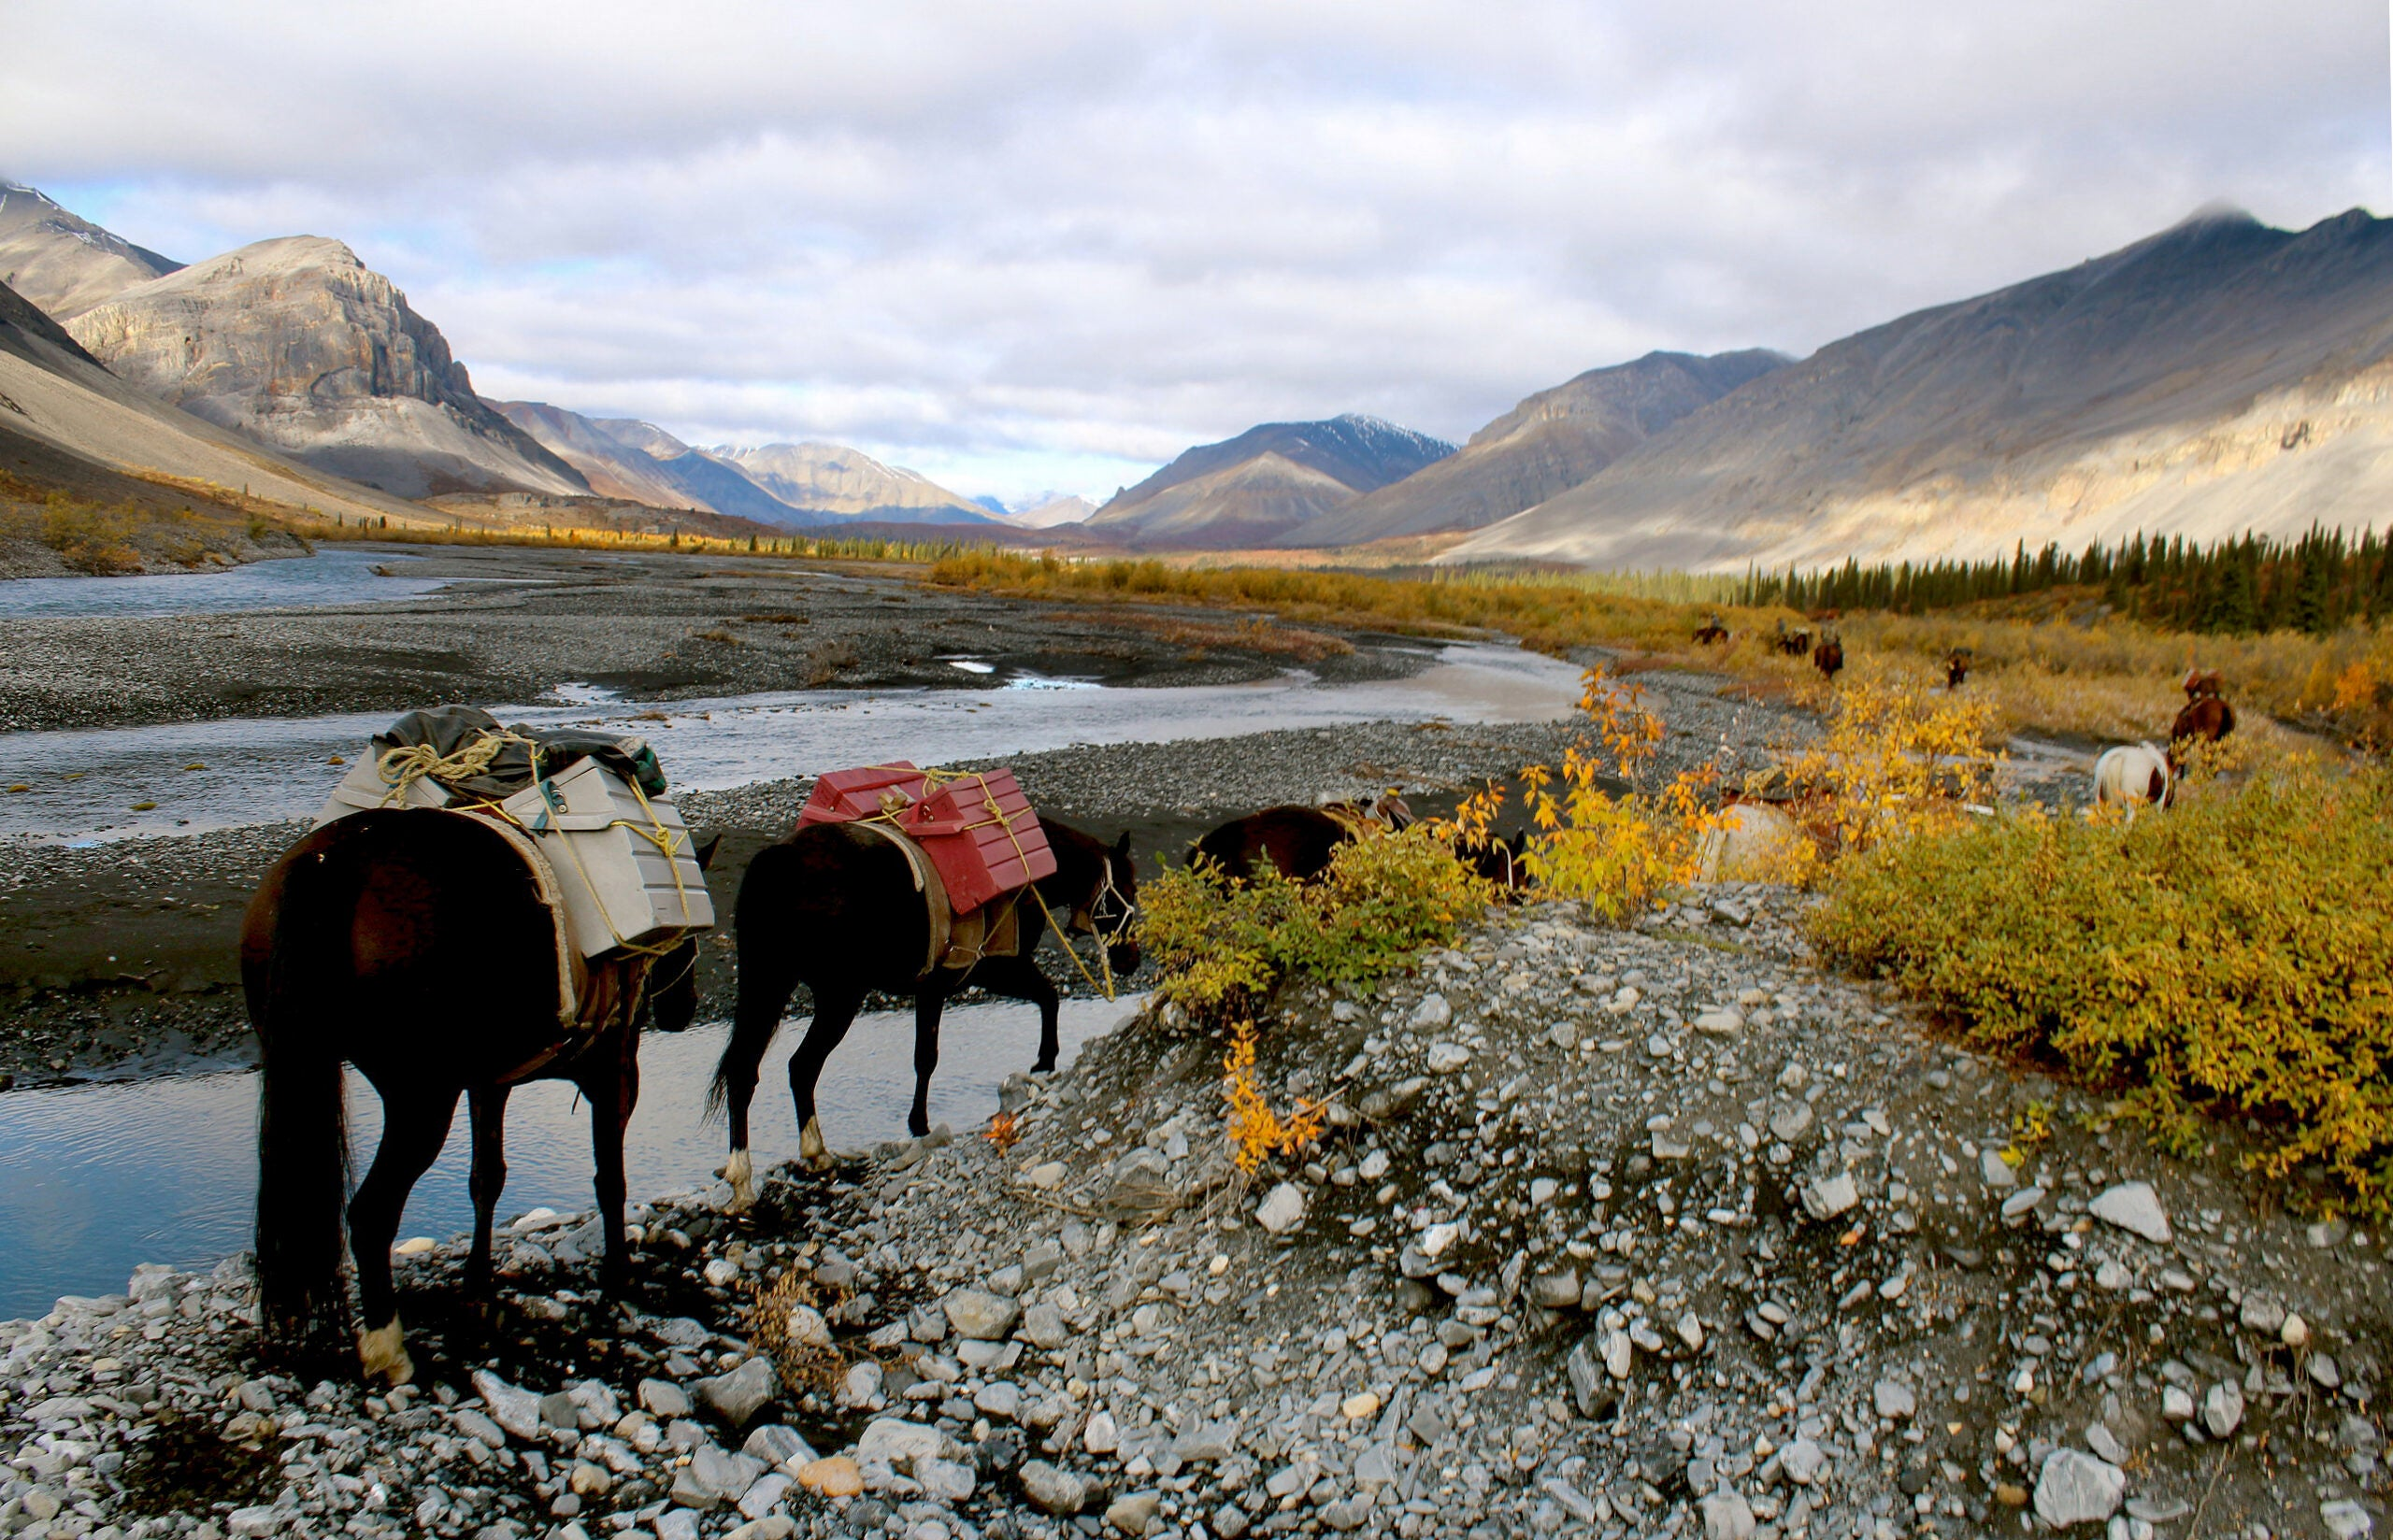 A train of pack horses, loaded with gear, walk along a mountain river valley in British Columbia.